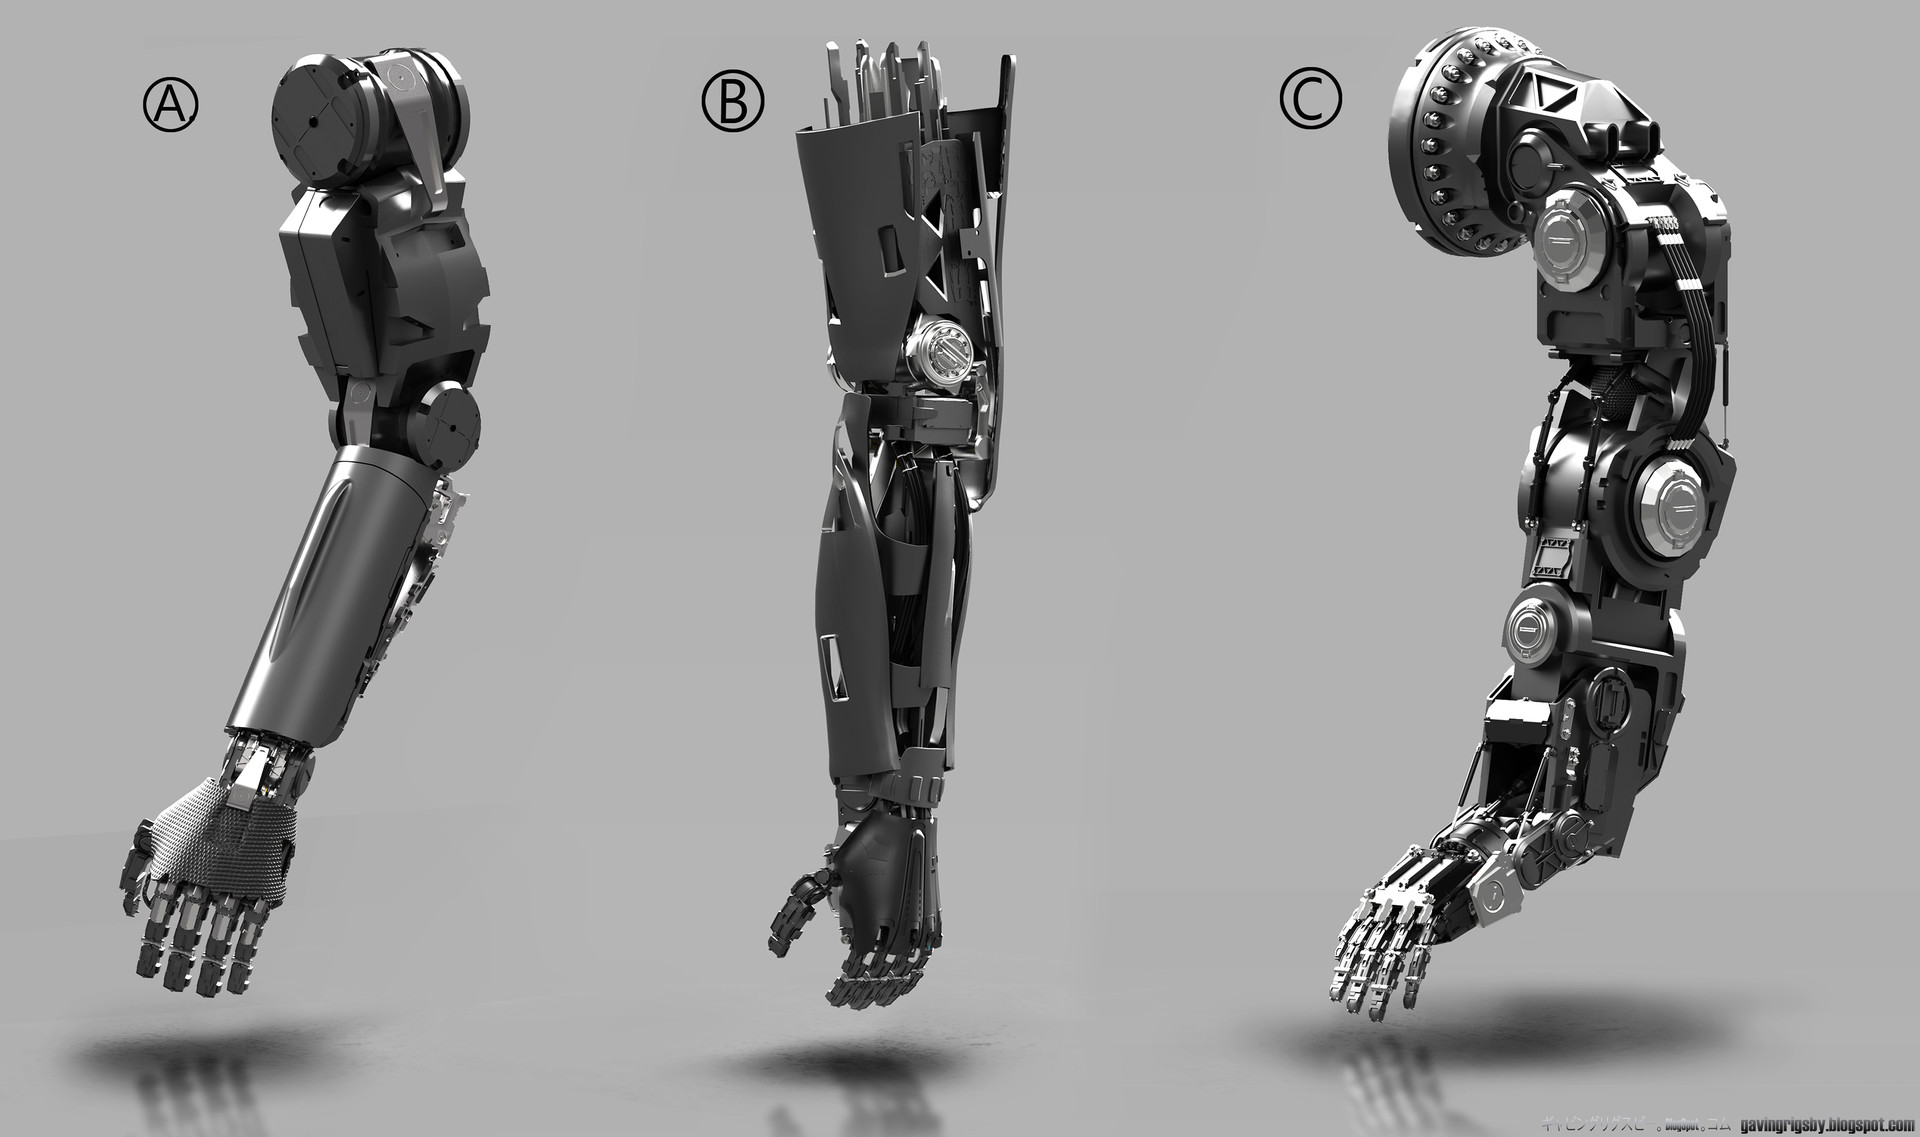 ArtStation - Personal Work-Droid ARM Development Sketches, Gavin Grigsby